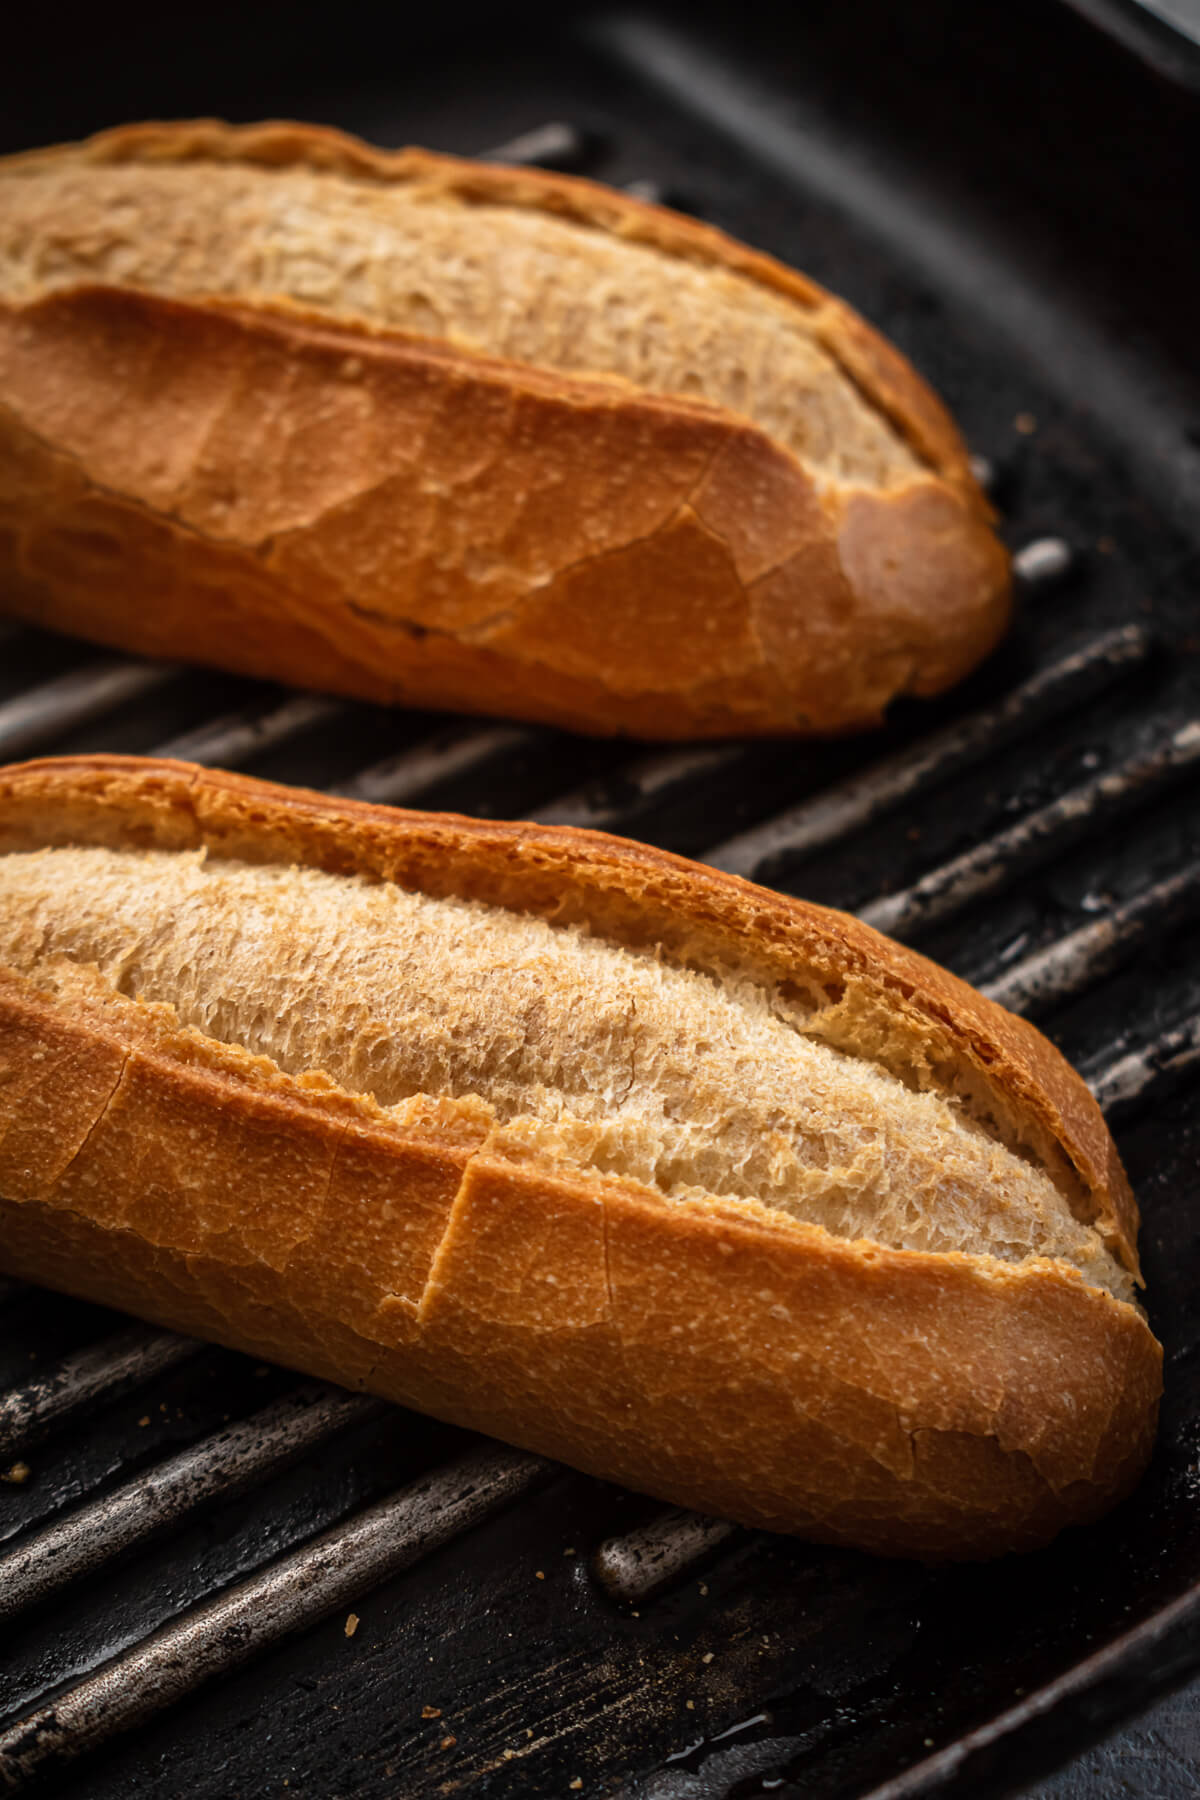 Baguette halves toast on a grill.